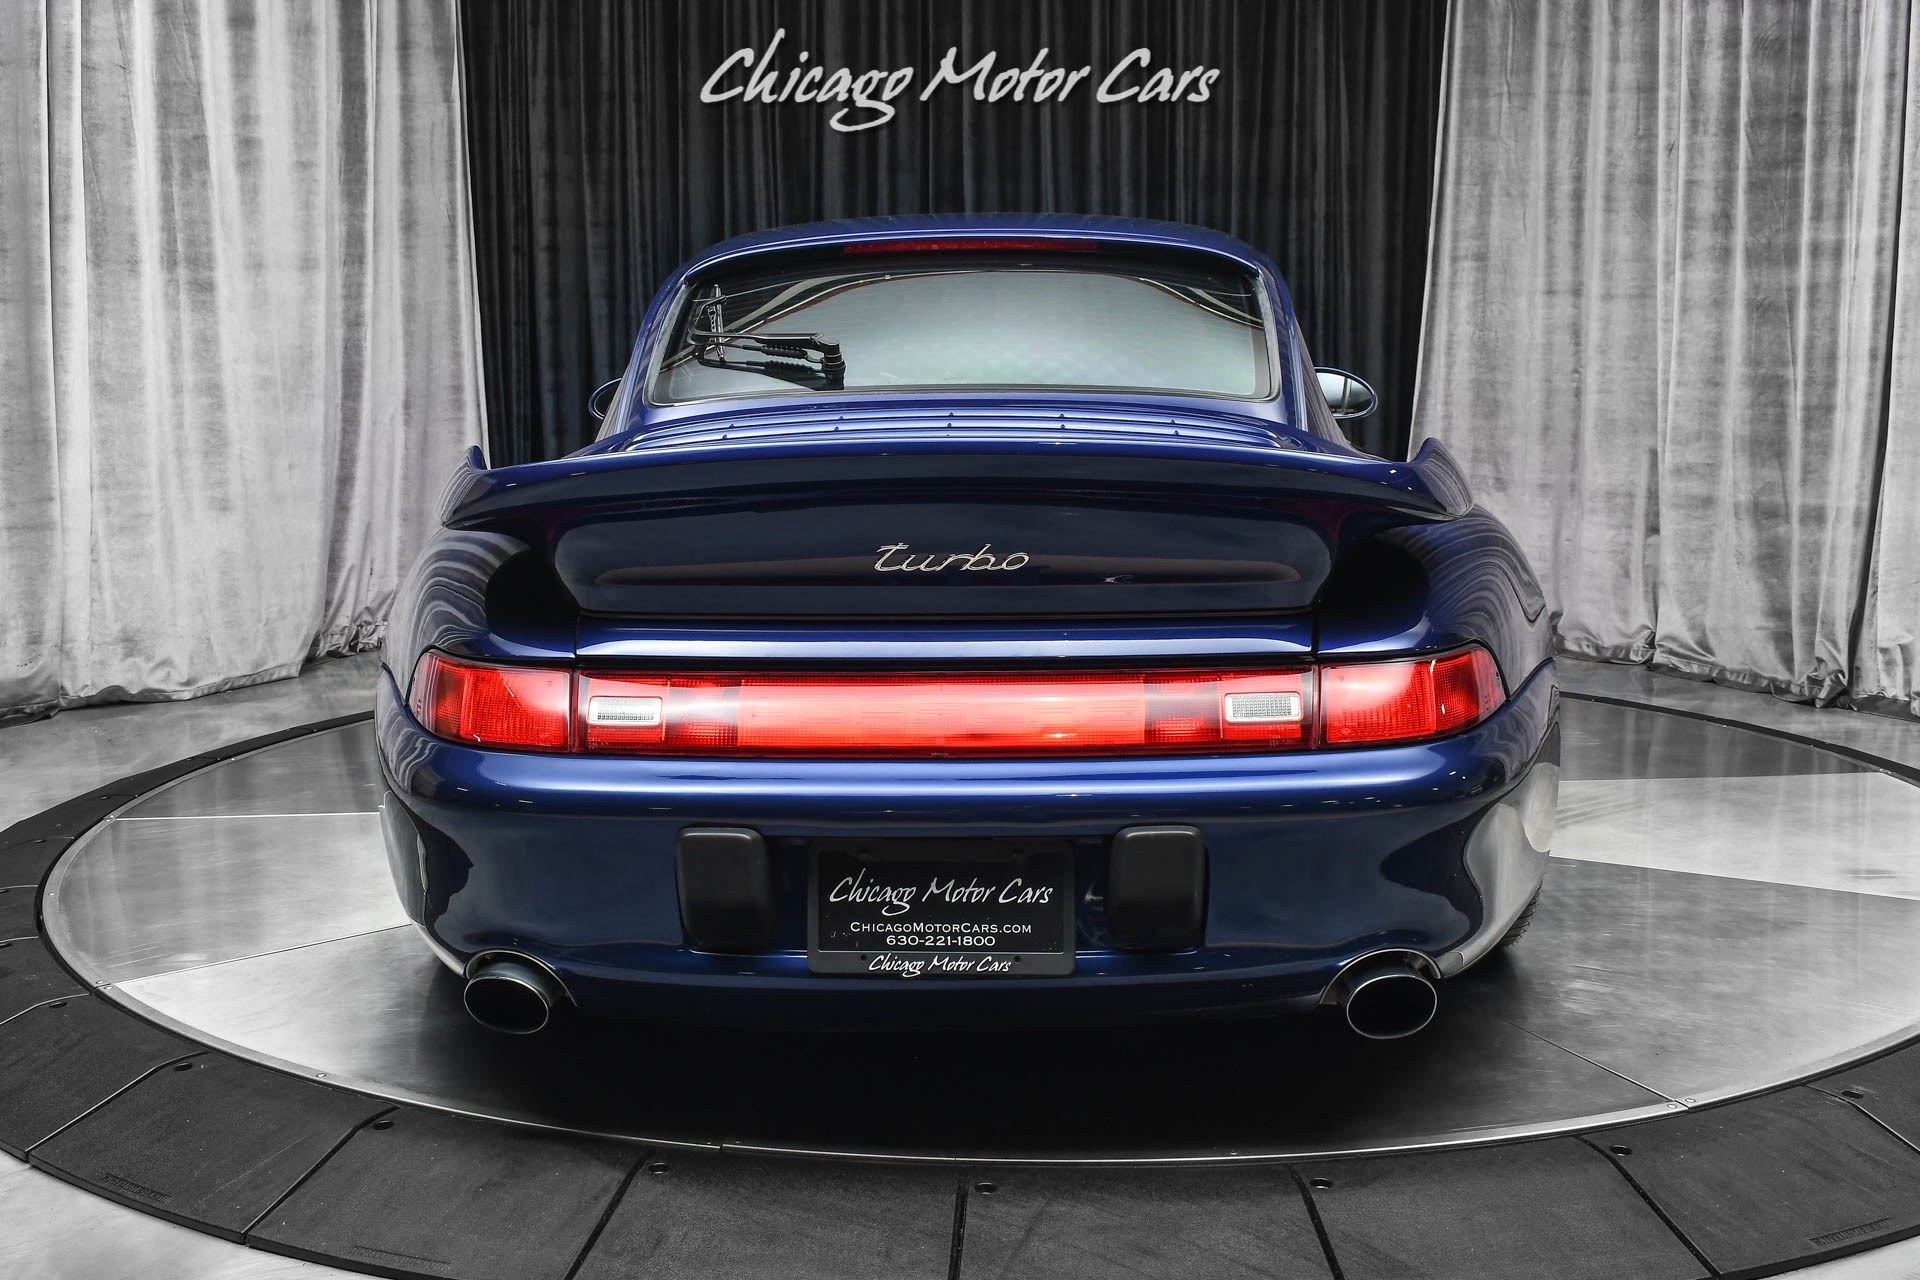 Used-1996-Porsche-911-Turbo-Full-500HP-Andial-Build-Extremely-Well-Maintained-Serviced